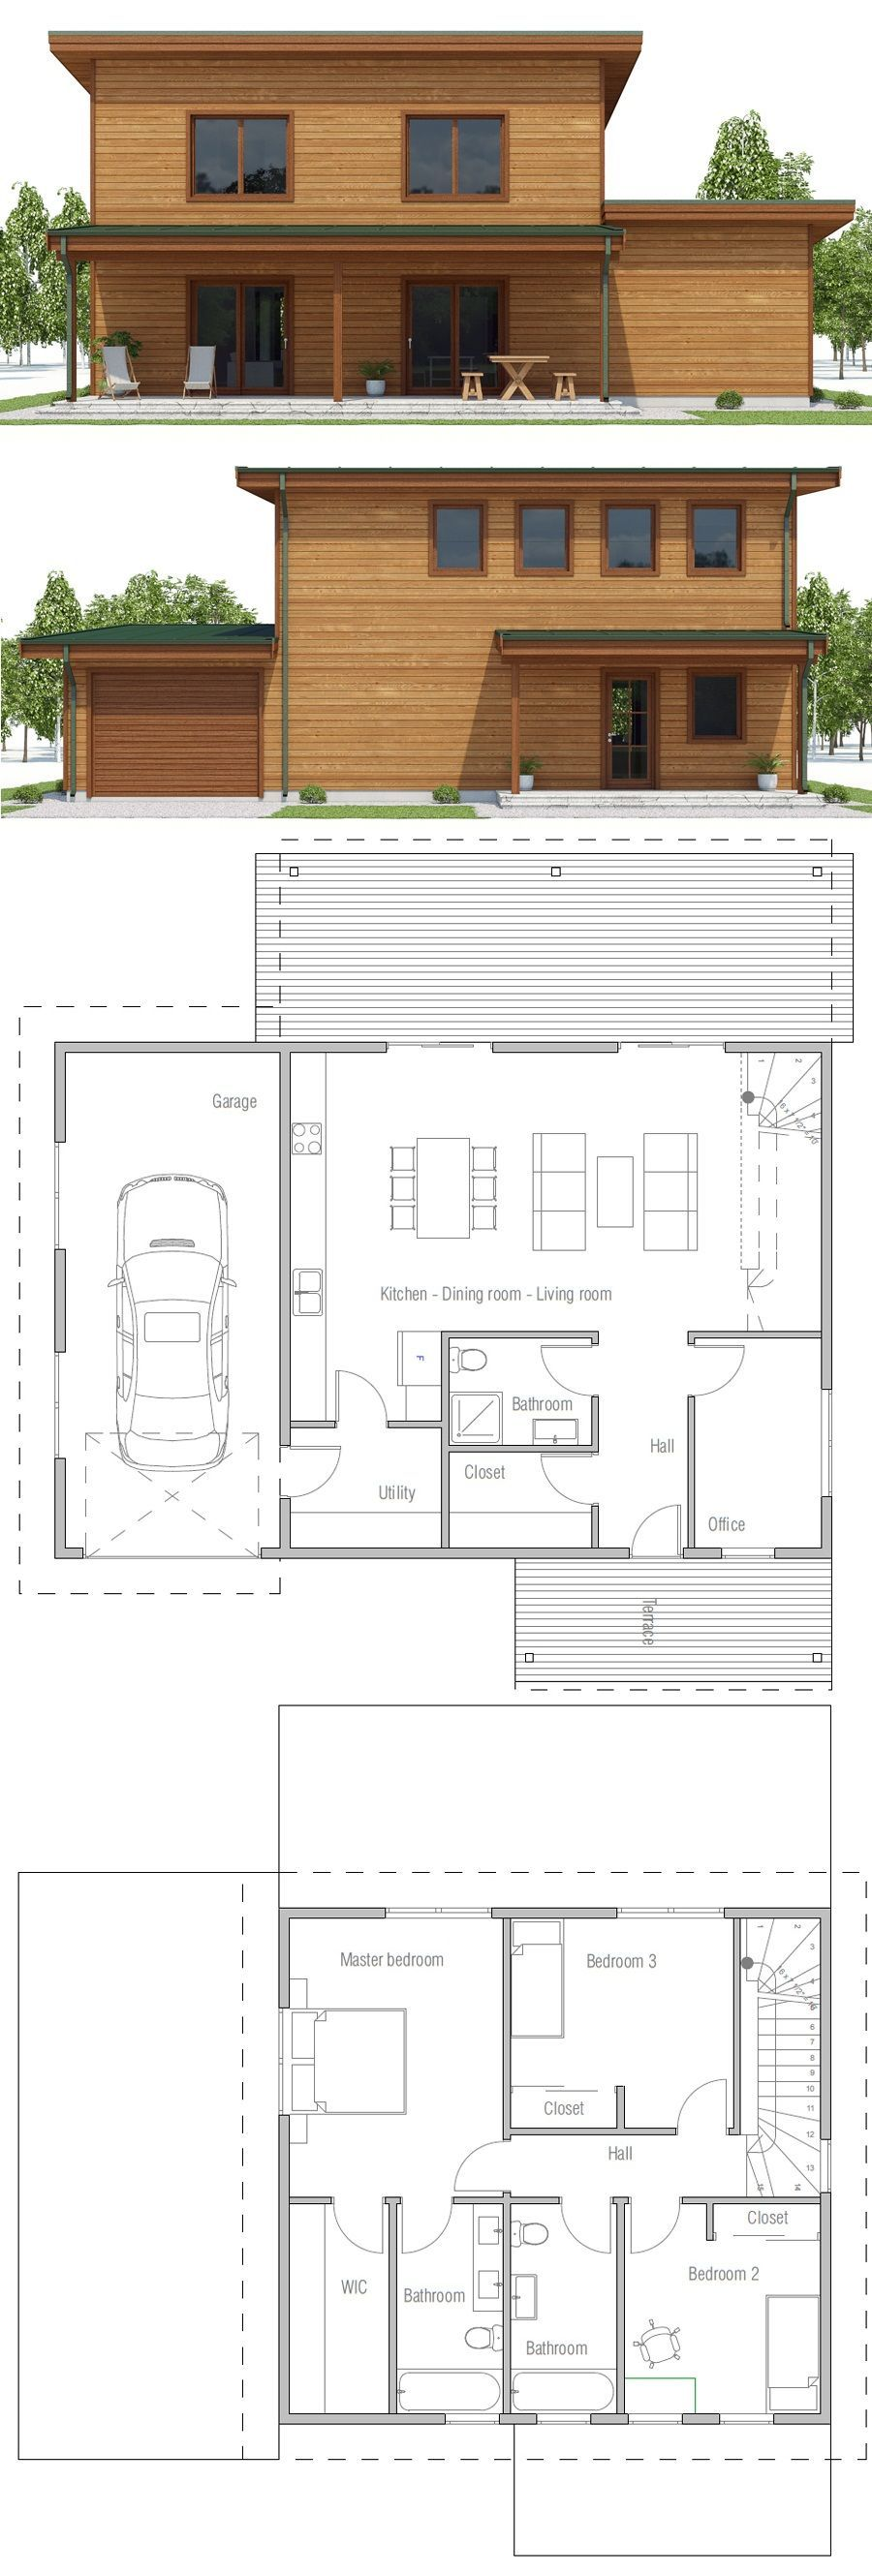 Container Home Plan, Shipping container house design   case ...